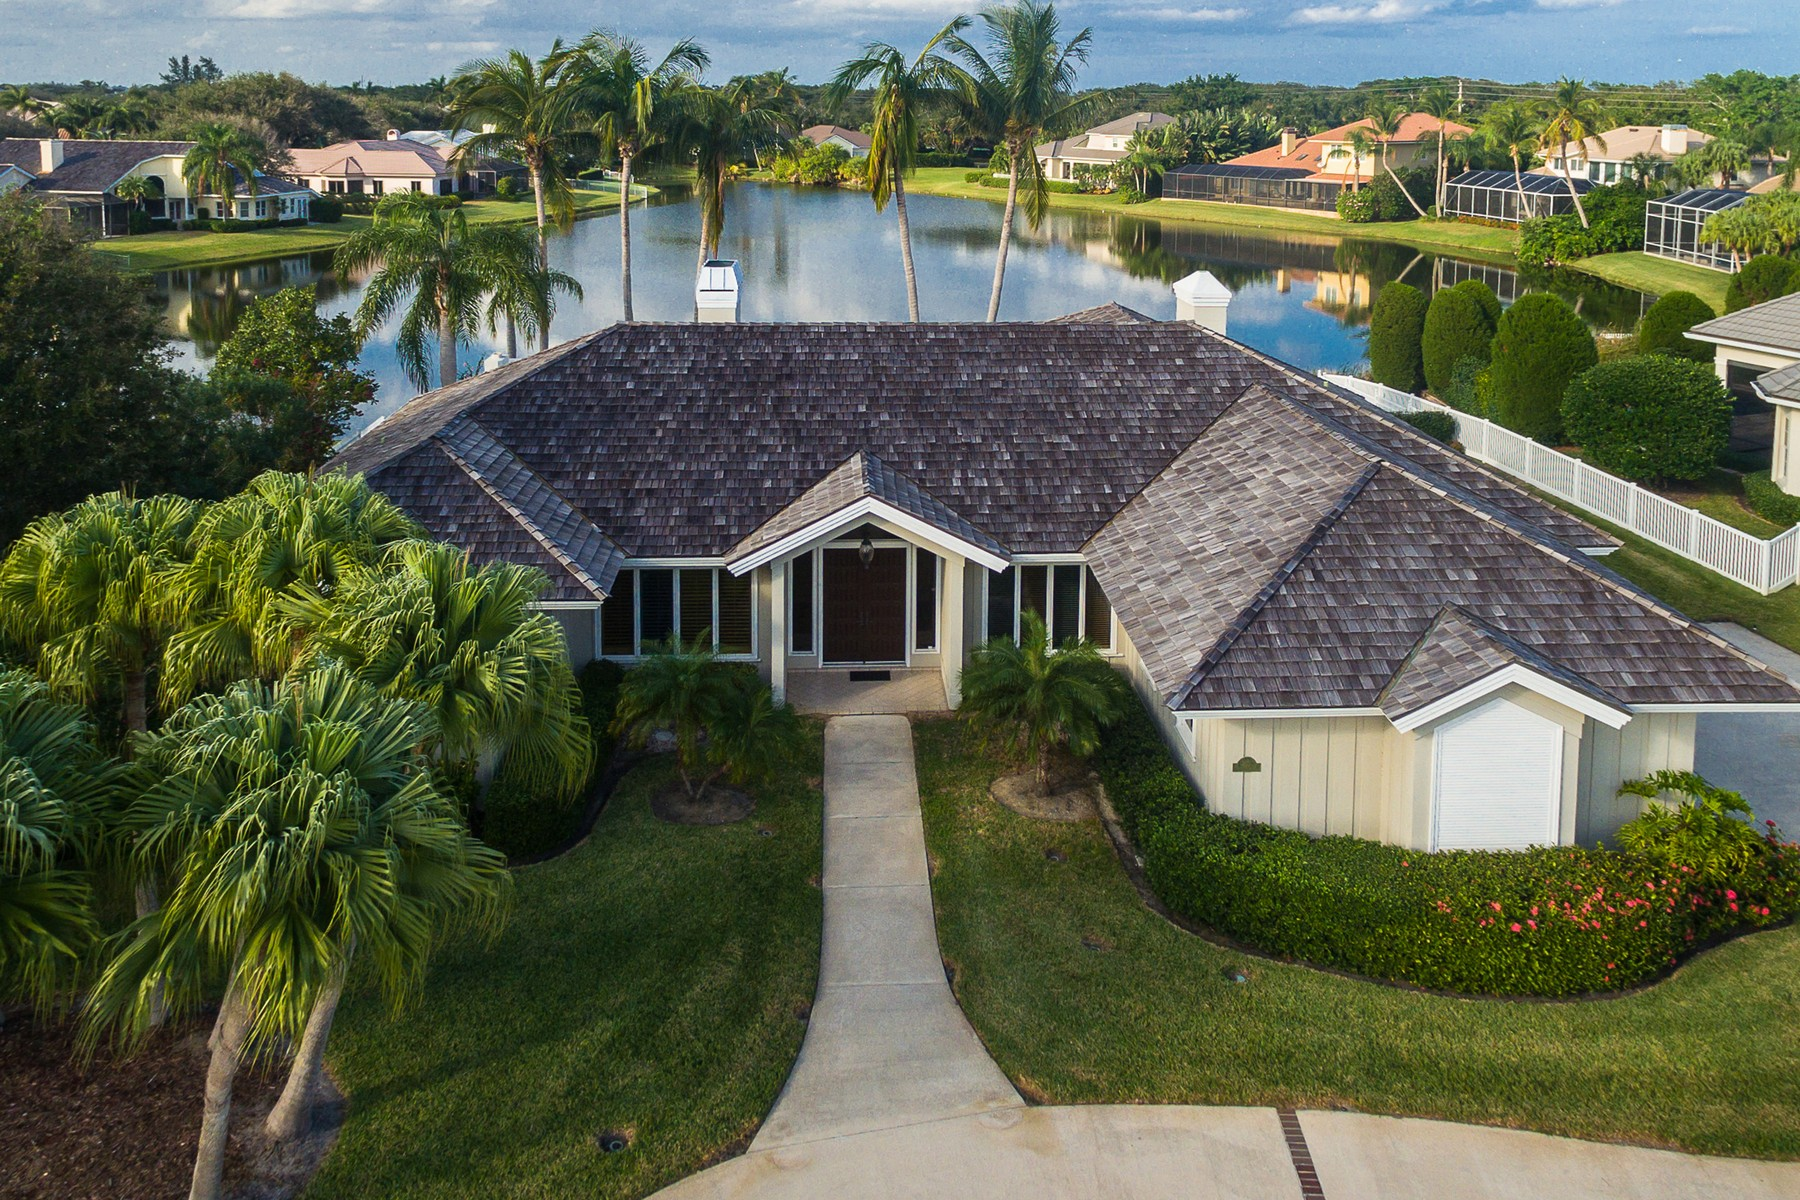 Single Family Home for Sale at Spacious Lakefront Home in Seagrove West 200 Riverway Drive Vero Beach, Florida, 32963 United States